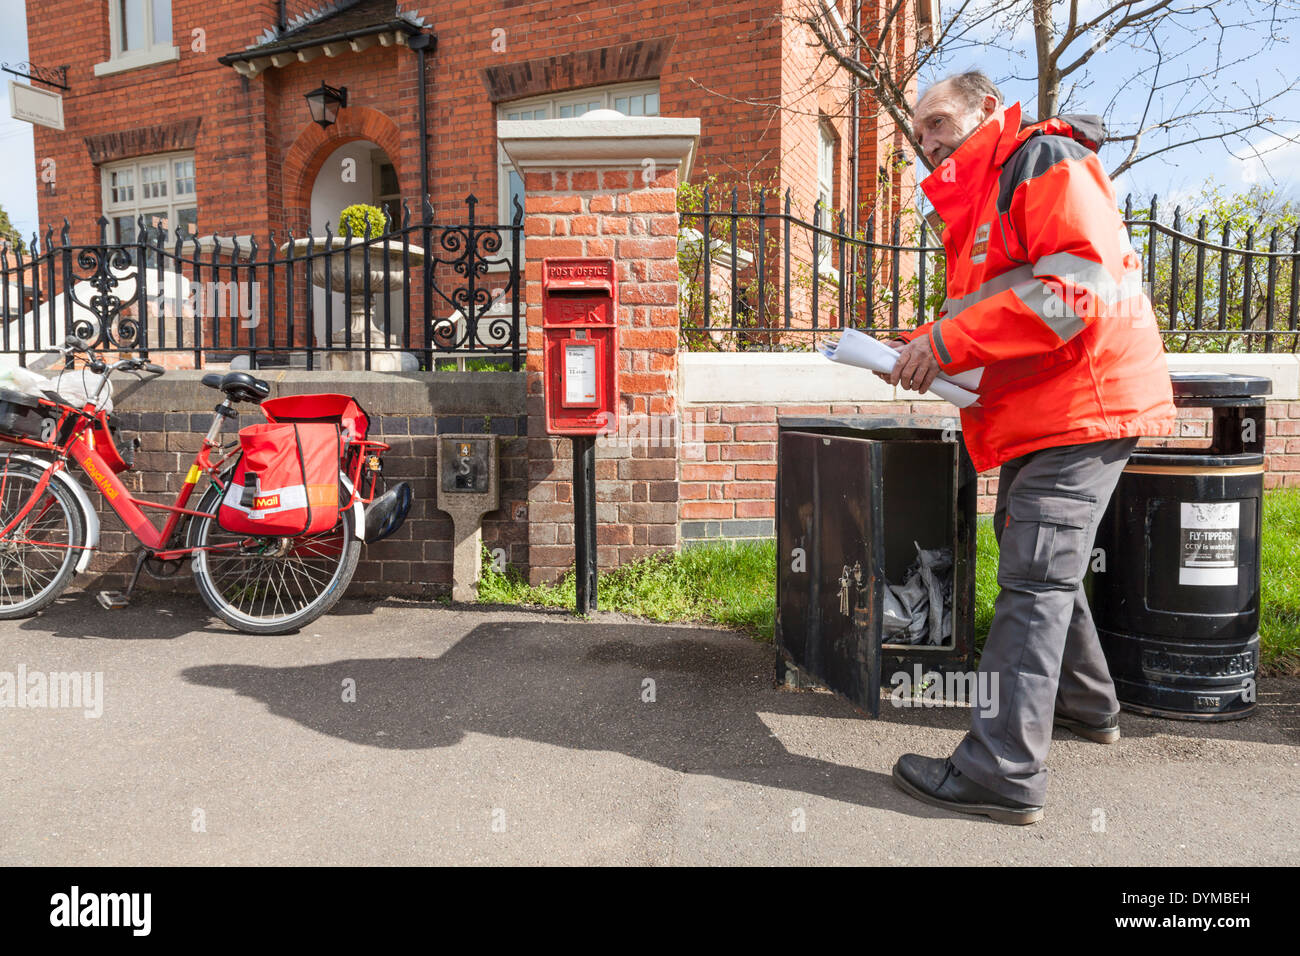 Royal Mail postman collecting post from a box prior to delivering. Nottinghamshire, England, UK - Stock Image